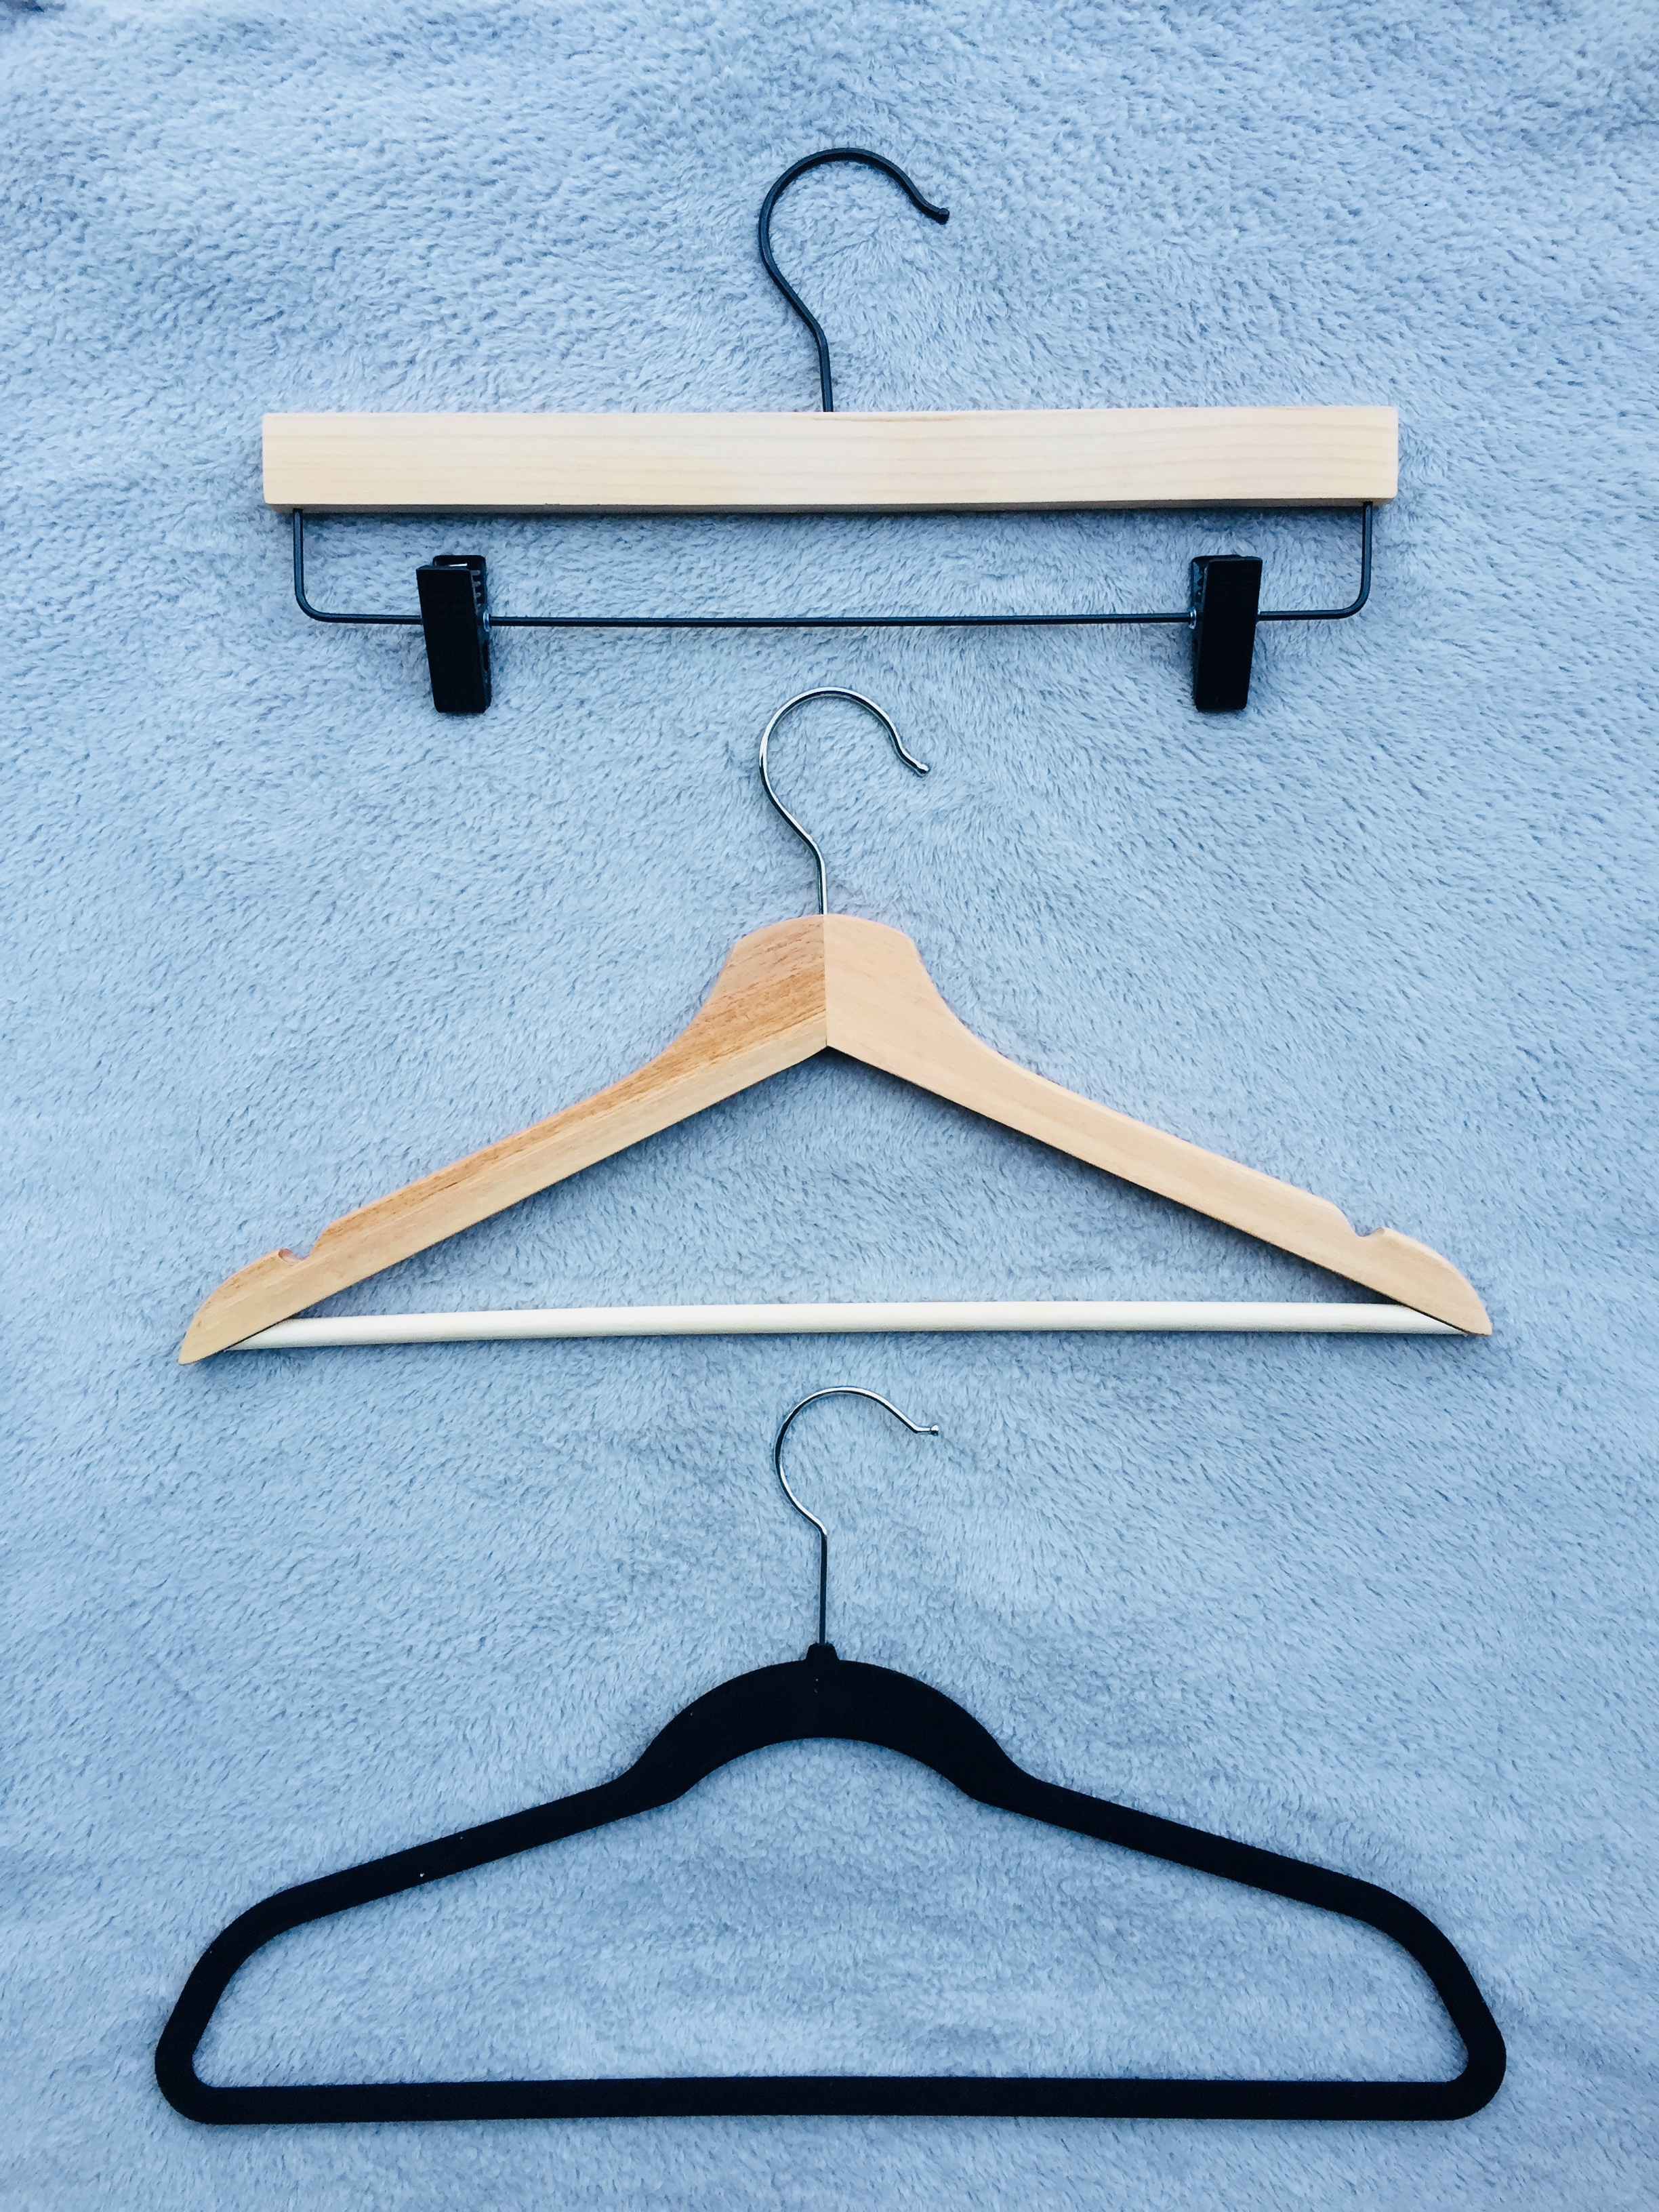 NAPO-WDC - No Wire Hangers, EVER!